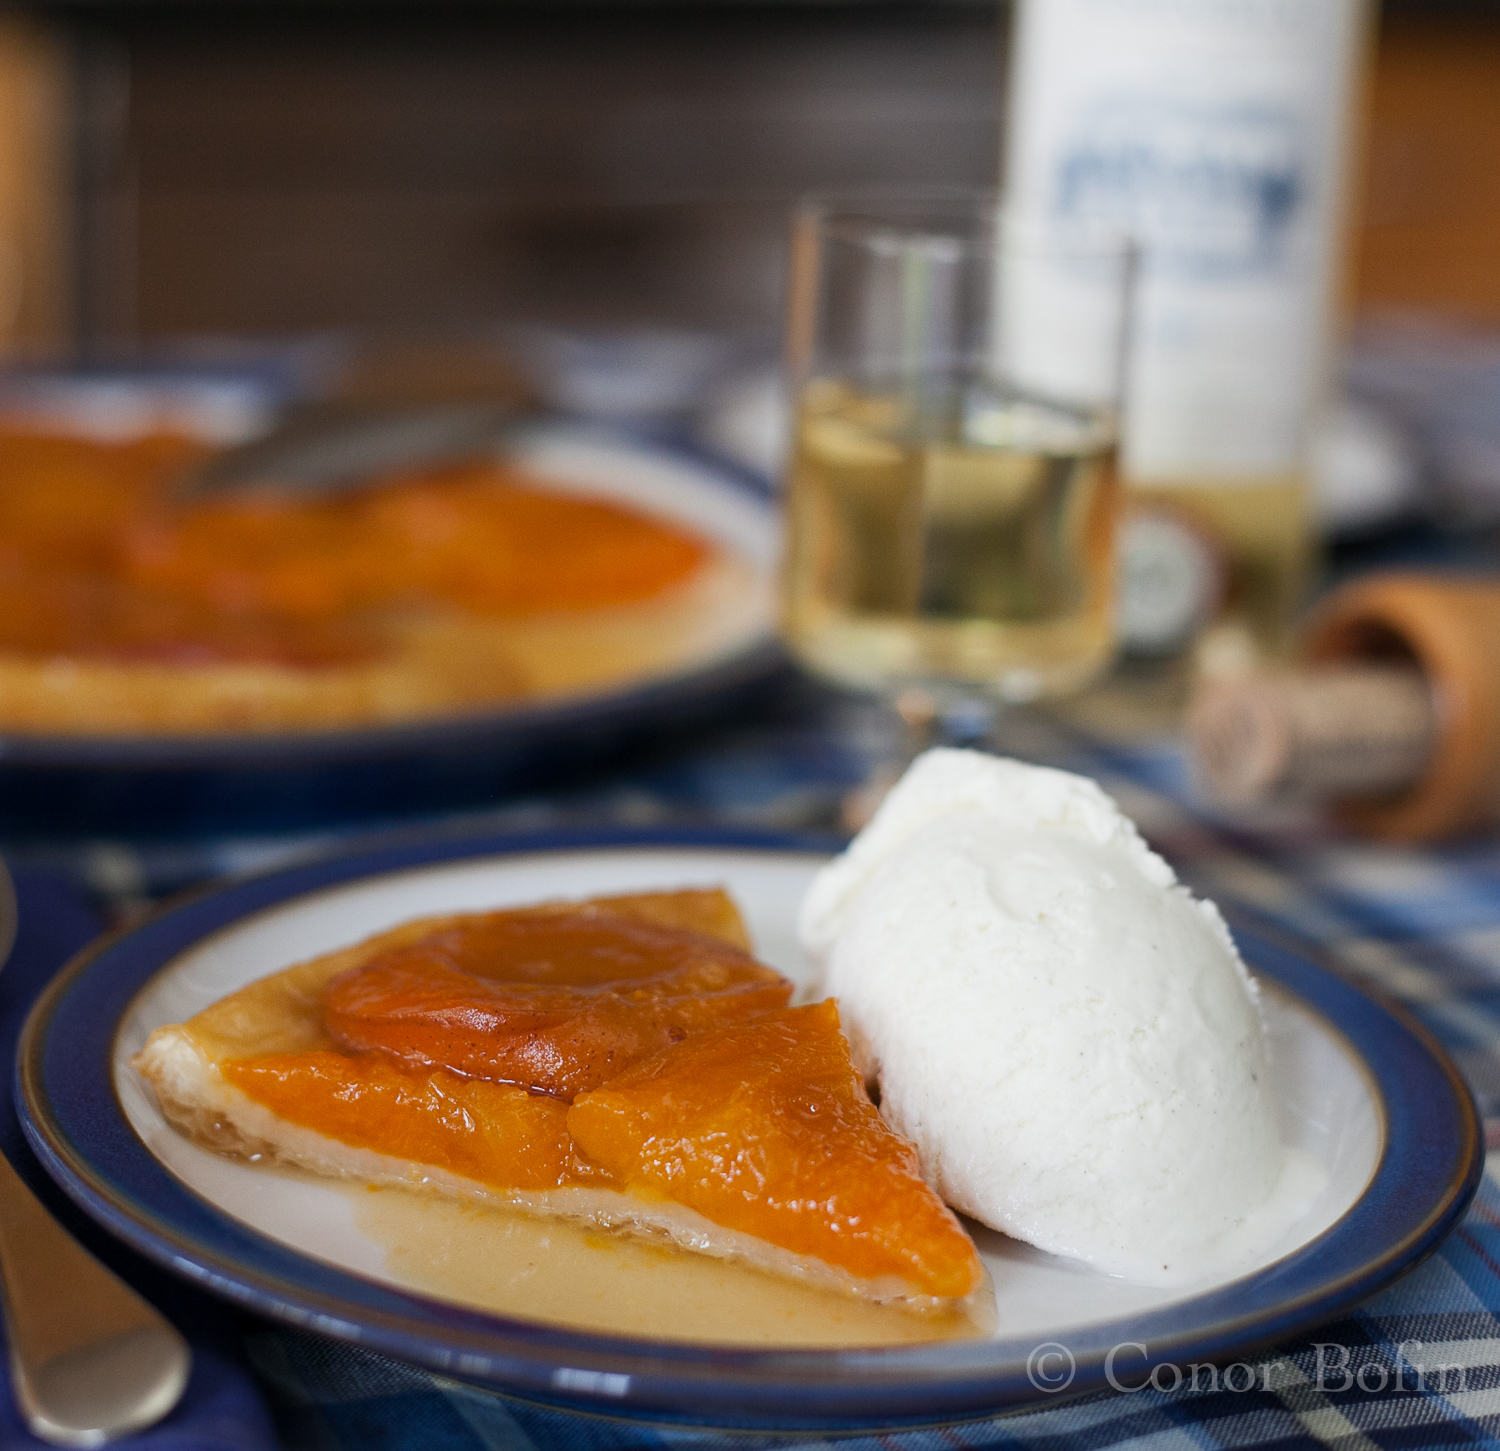 ... Aftertaste of Blog Awards and Apricot Tart Tatin. | One Man's Meat